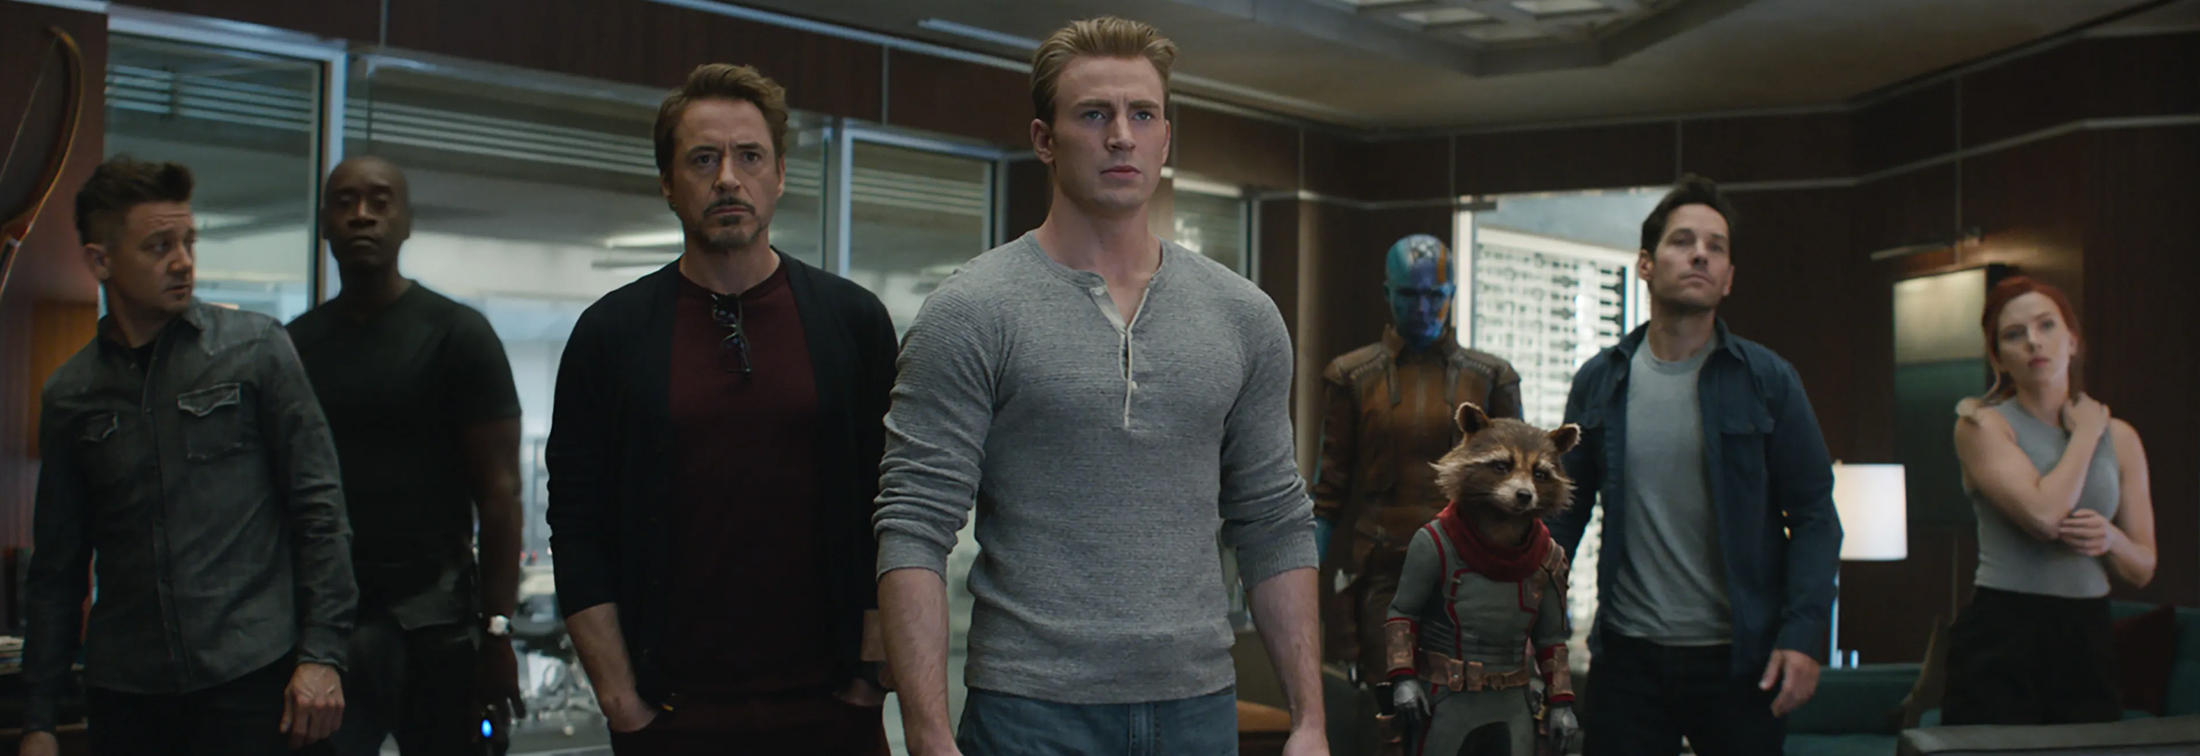 Avengers: Endgame - This is the way it all ends - not with a bang, but with a whimper